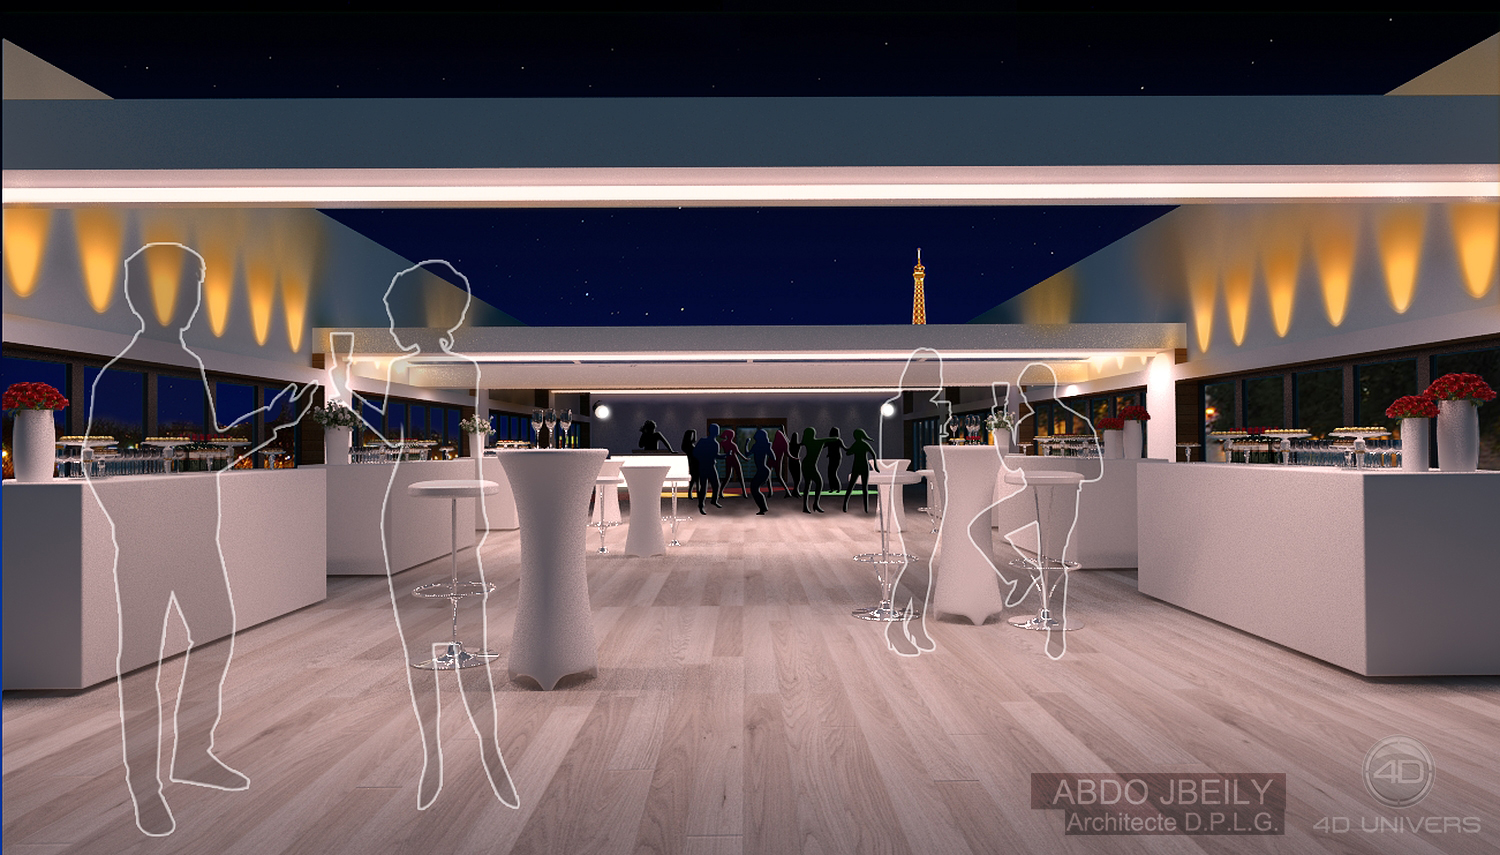 Restaurant 3d vue 4d univers studio animation 3d for Architecture 3d vue 3d